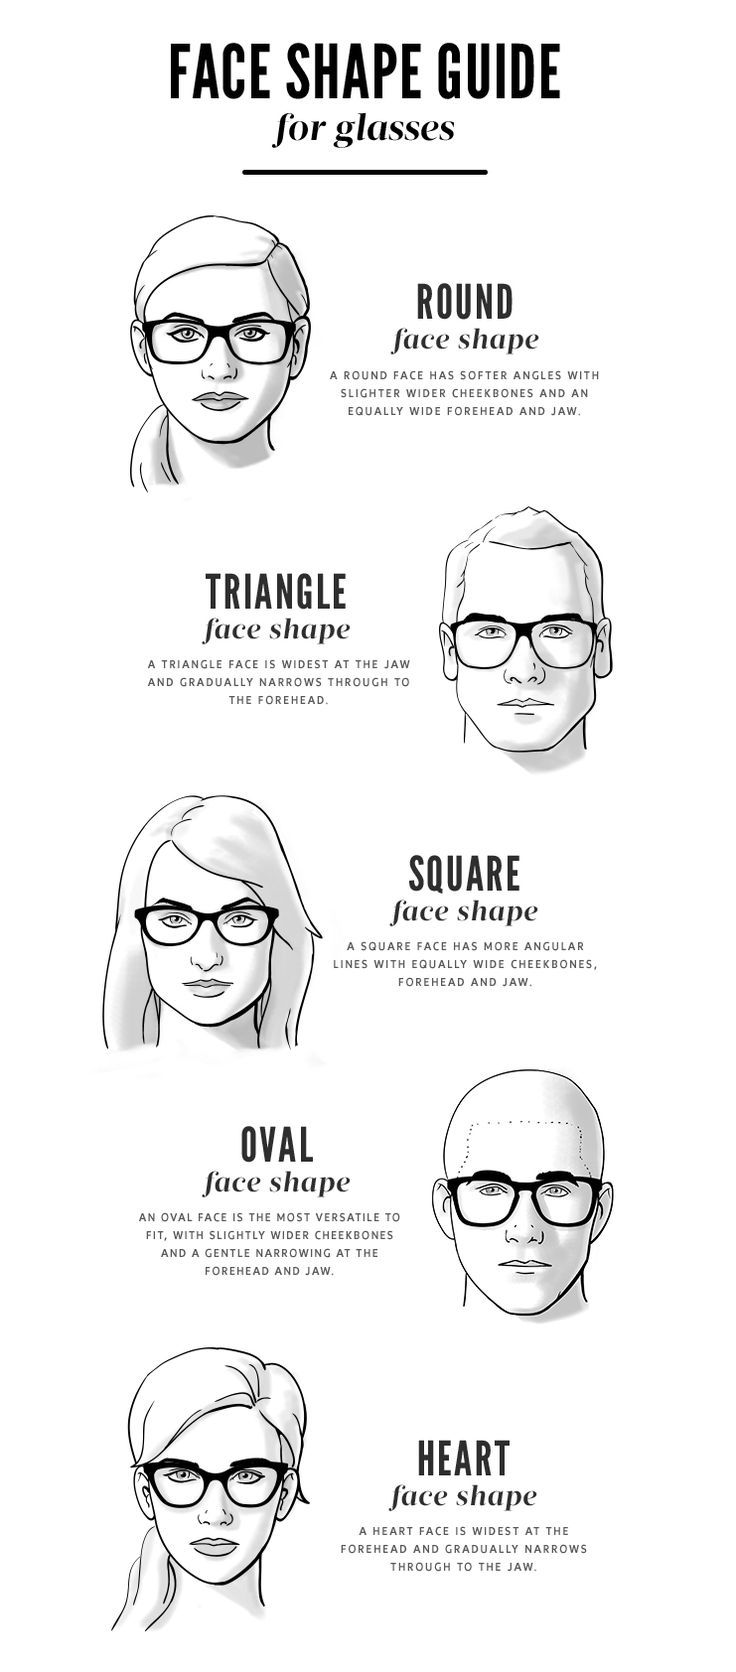 Glasses Frame Shape Round Face : Face Shape Guide for Glasses Which glasses shape best ...